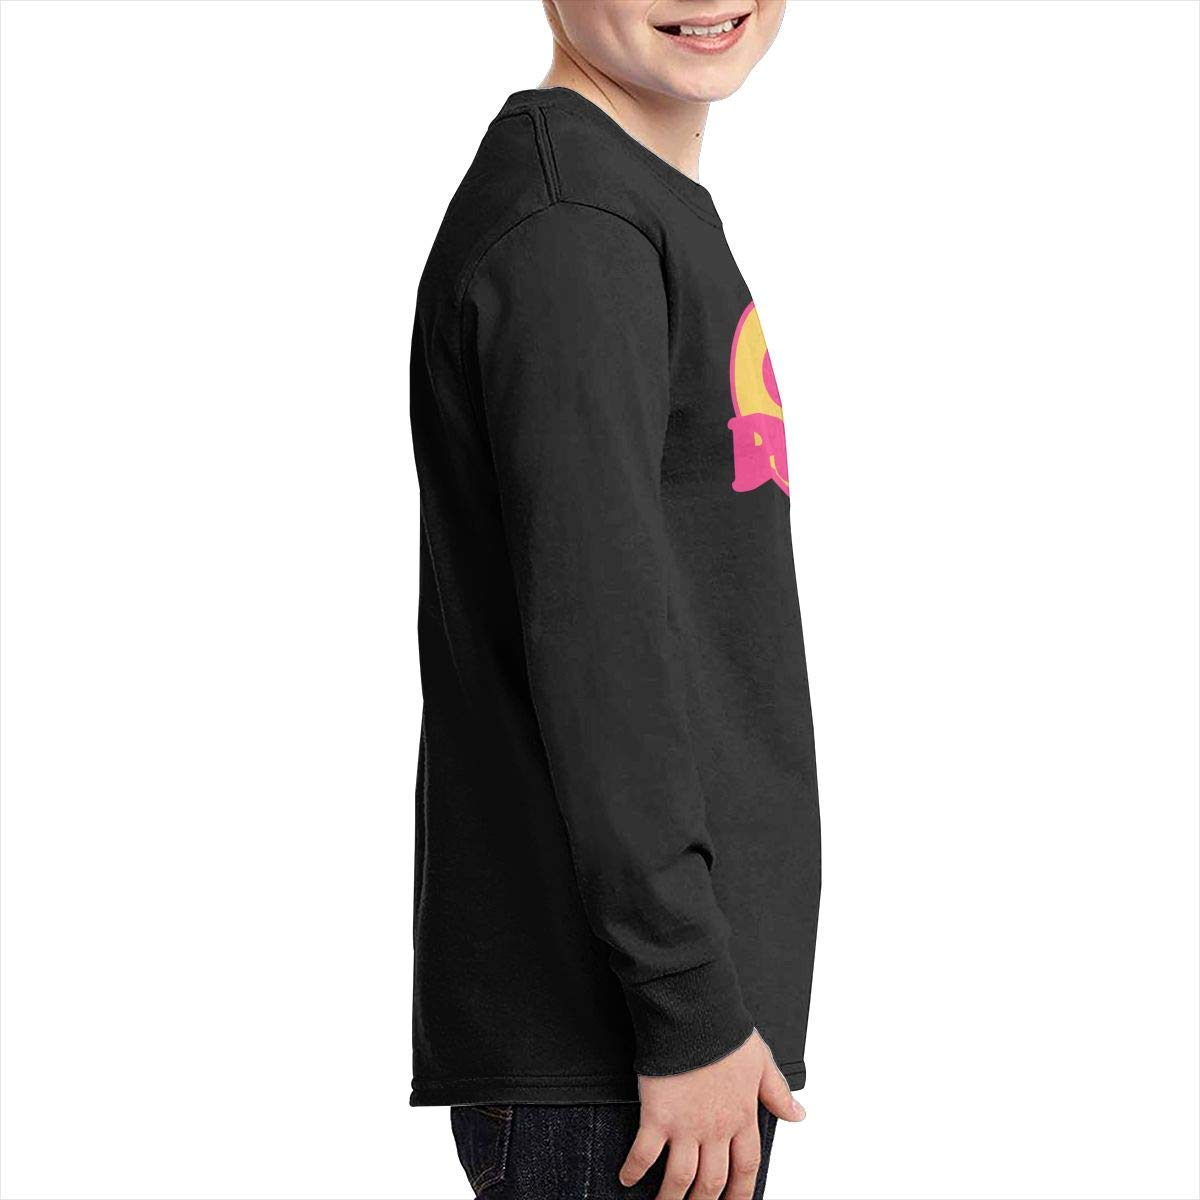 DH-MS Dress Boys Casual Long Sleeve Crew Neck Cotton Girl Power Heart Basic Tee for Youth